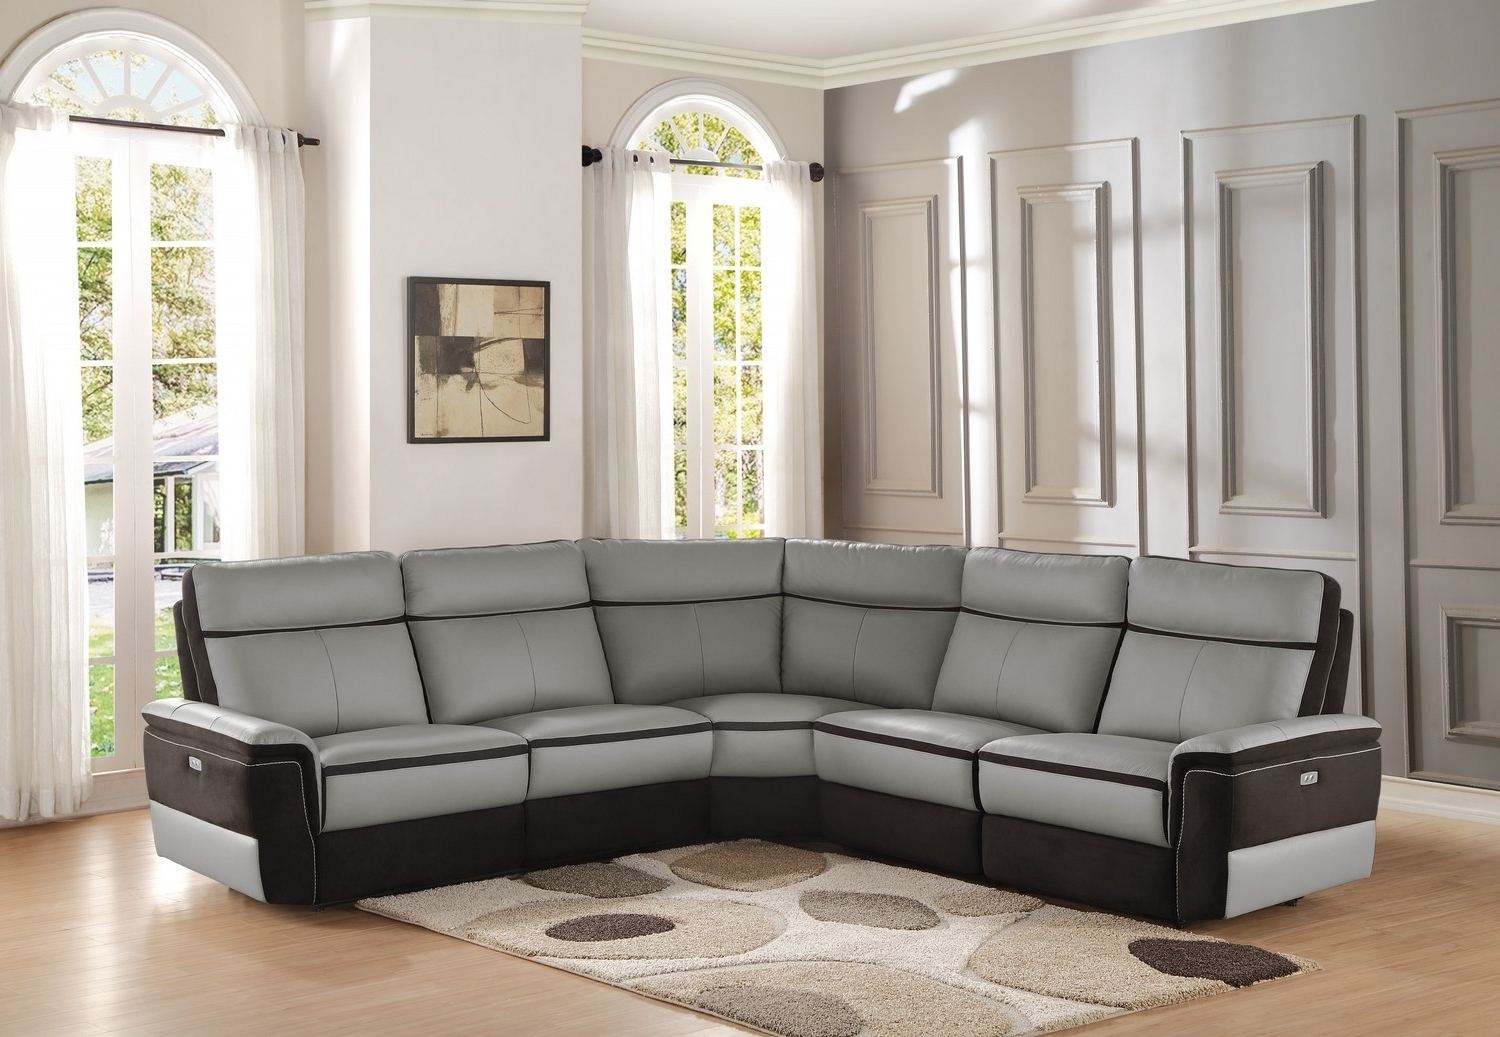 2019 Beckett Sectional Havertys Recliner Sofa Deals Power Reclining With Sectional Sofas At Havertys (View 1 of 20)